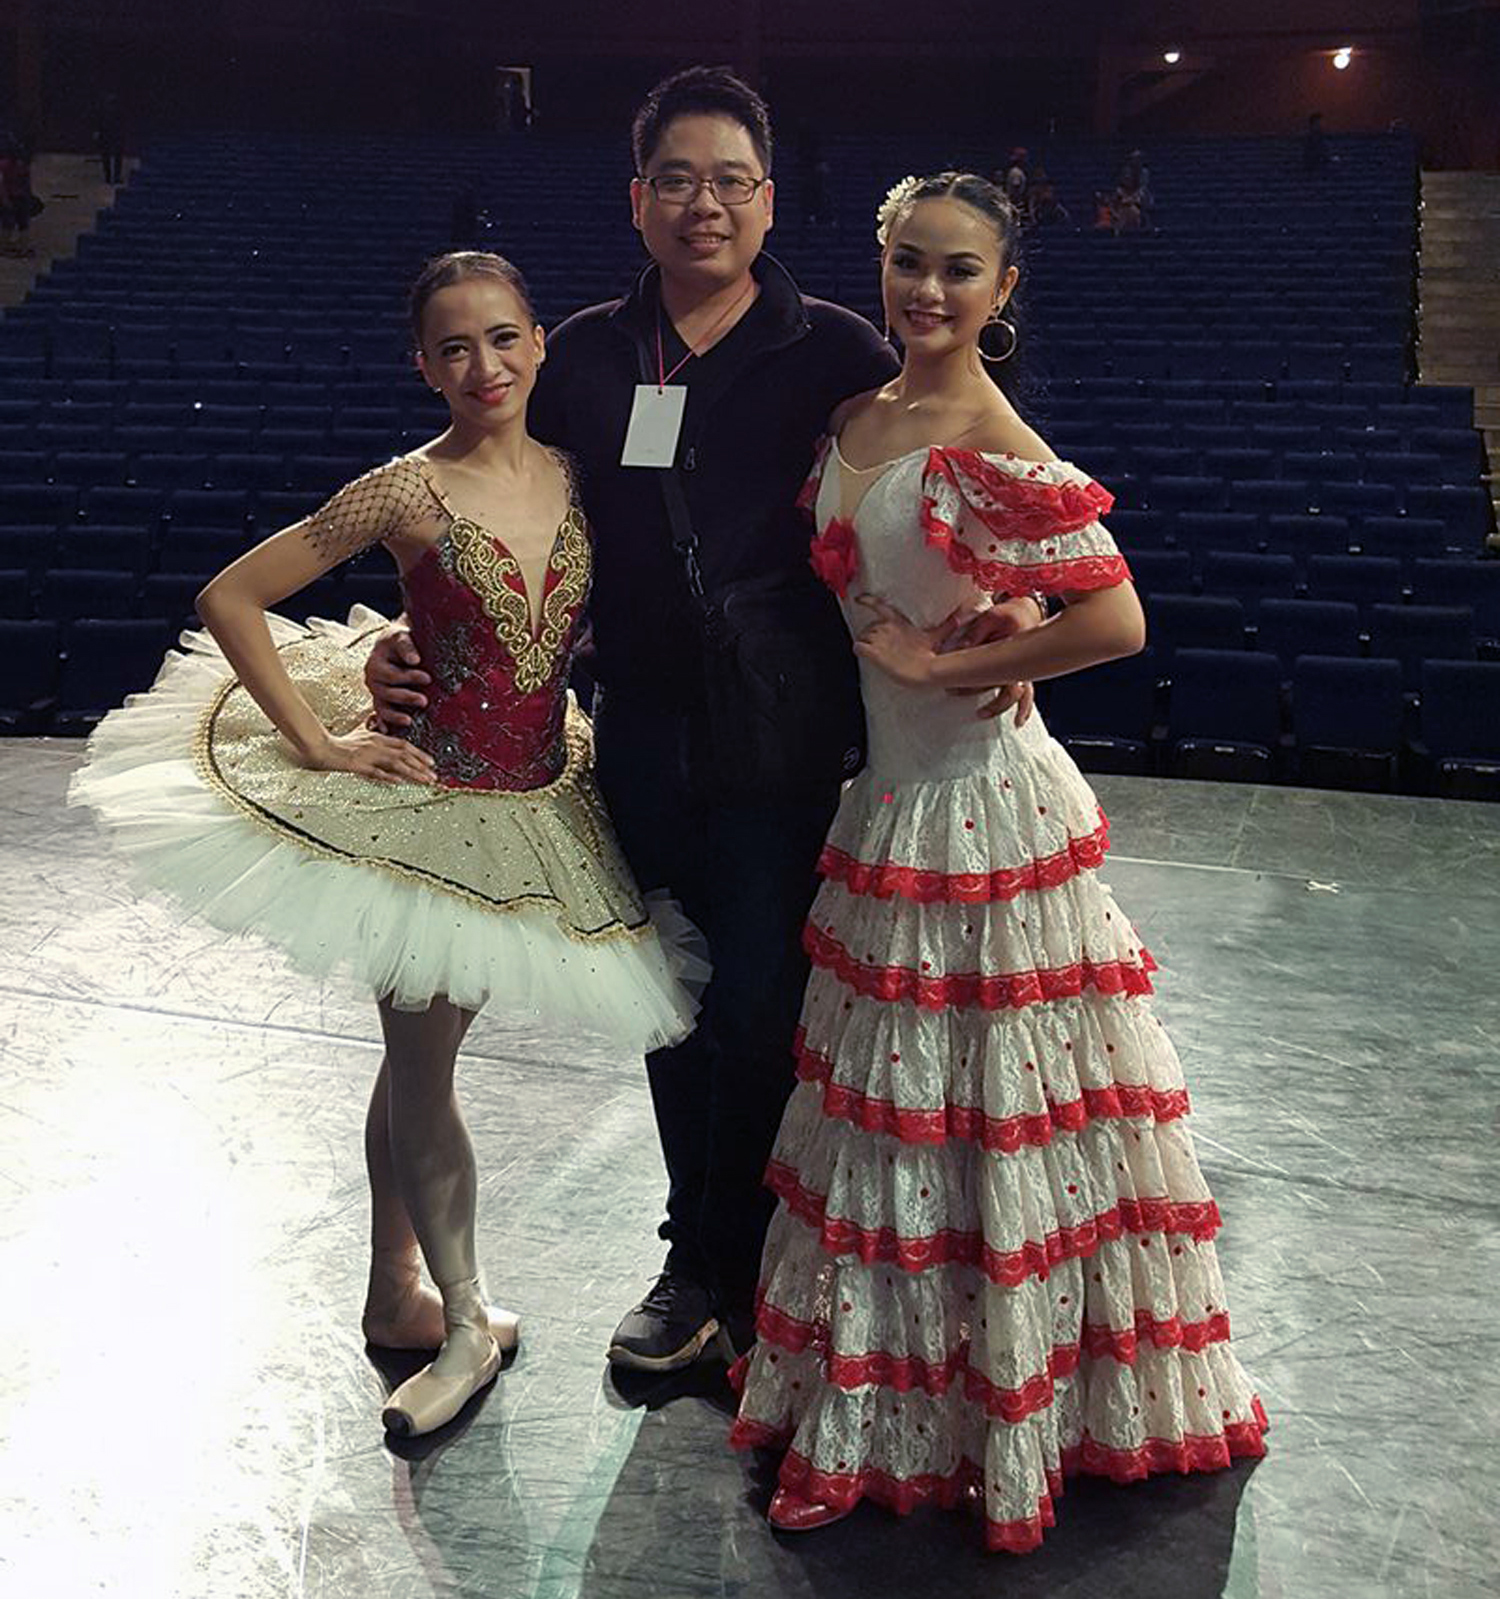 """Teacher Jonathan Janolo (middle) captioned this photo with scholars Jessa Balote and Rissa May on his Facebook page this way: """"Years ago they got introduced to their first pliè! Yes, malaki na sila!(They are big now.)"""""""